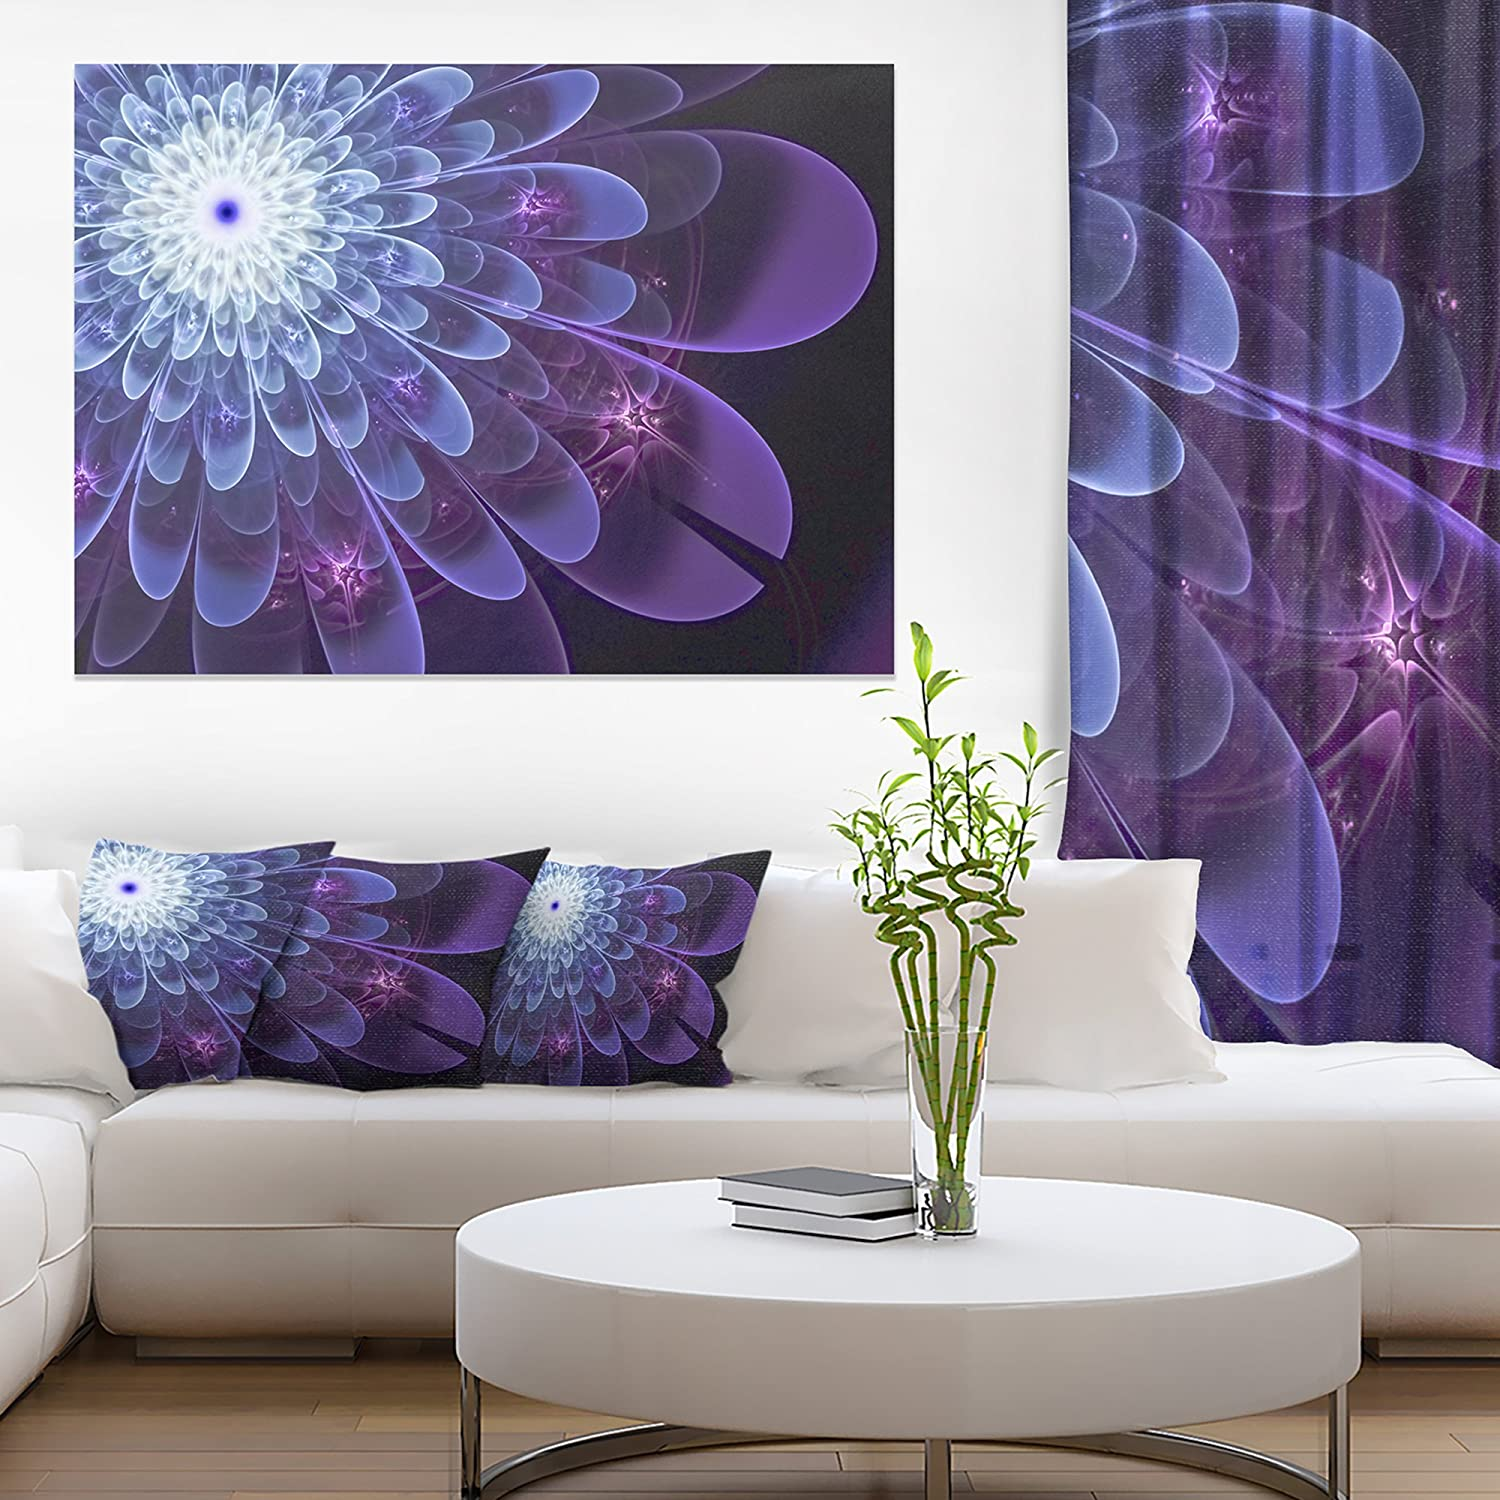 Designart PT121562012 Fractal Flower Petals CloseUp Floral Canvas Artwork Print, Purple, 20x12